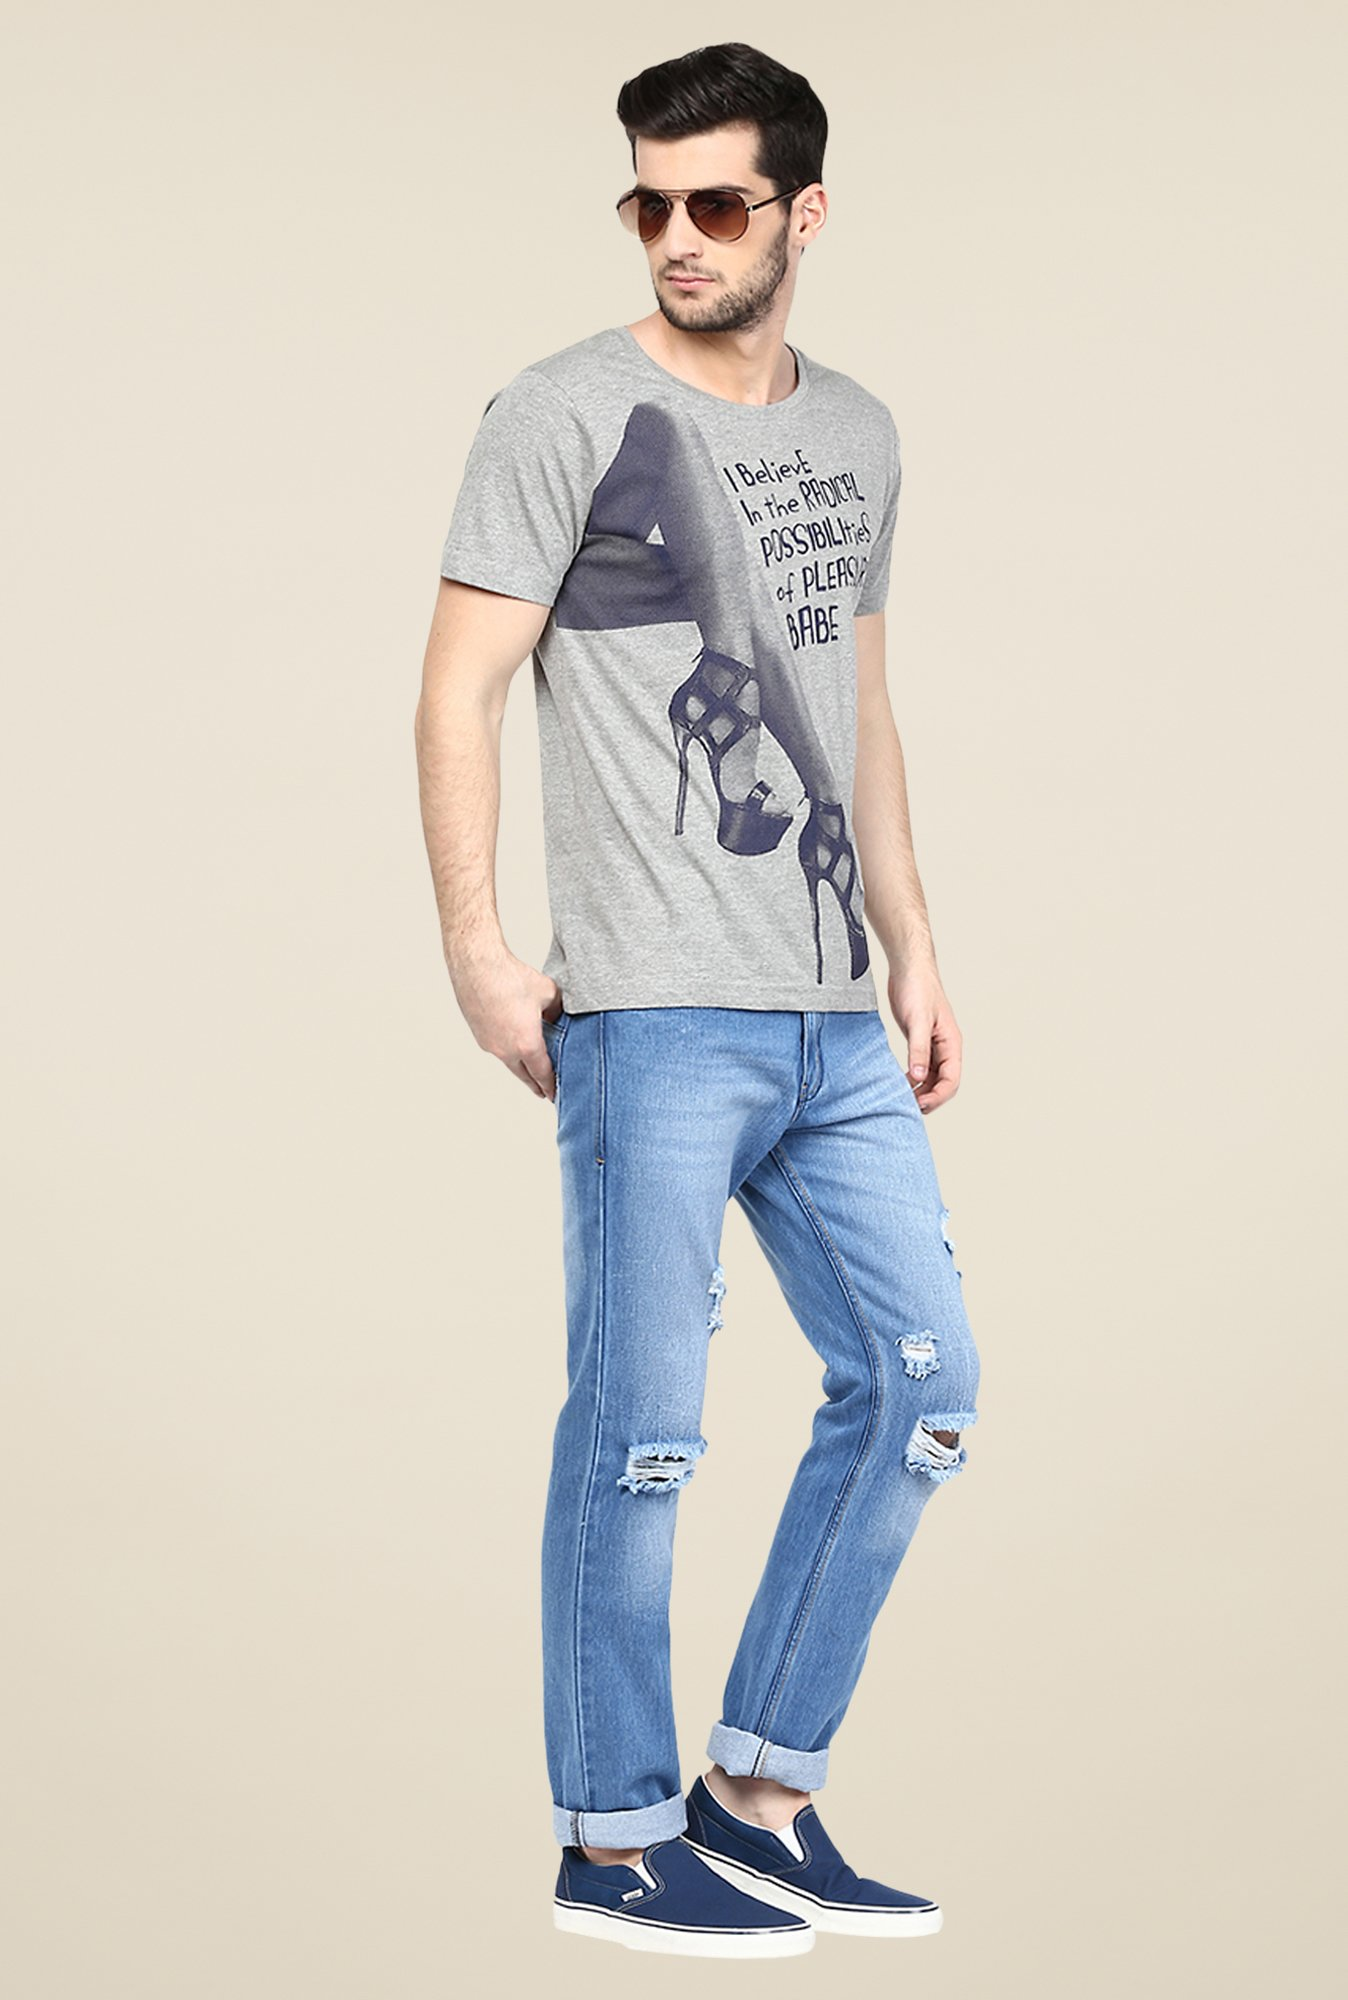 Yepme Grey Graphic Print T Shirt